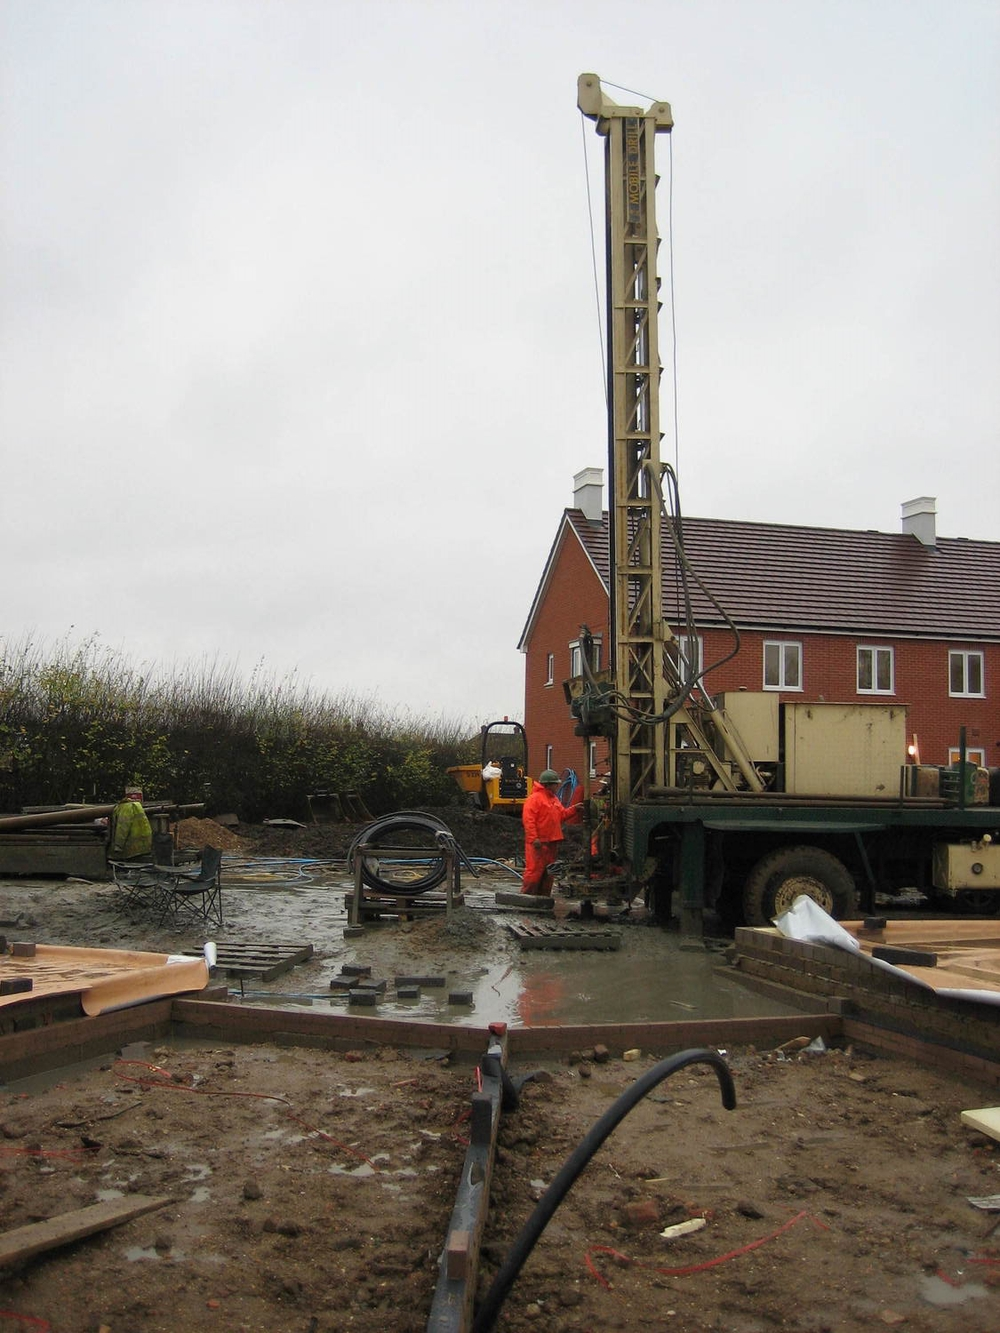 Borehole drilling rig for Ground Source Heat Pumps - Woking.JPG